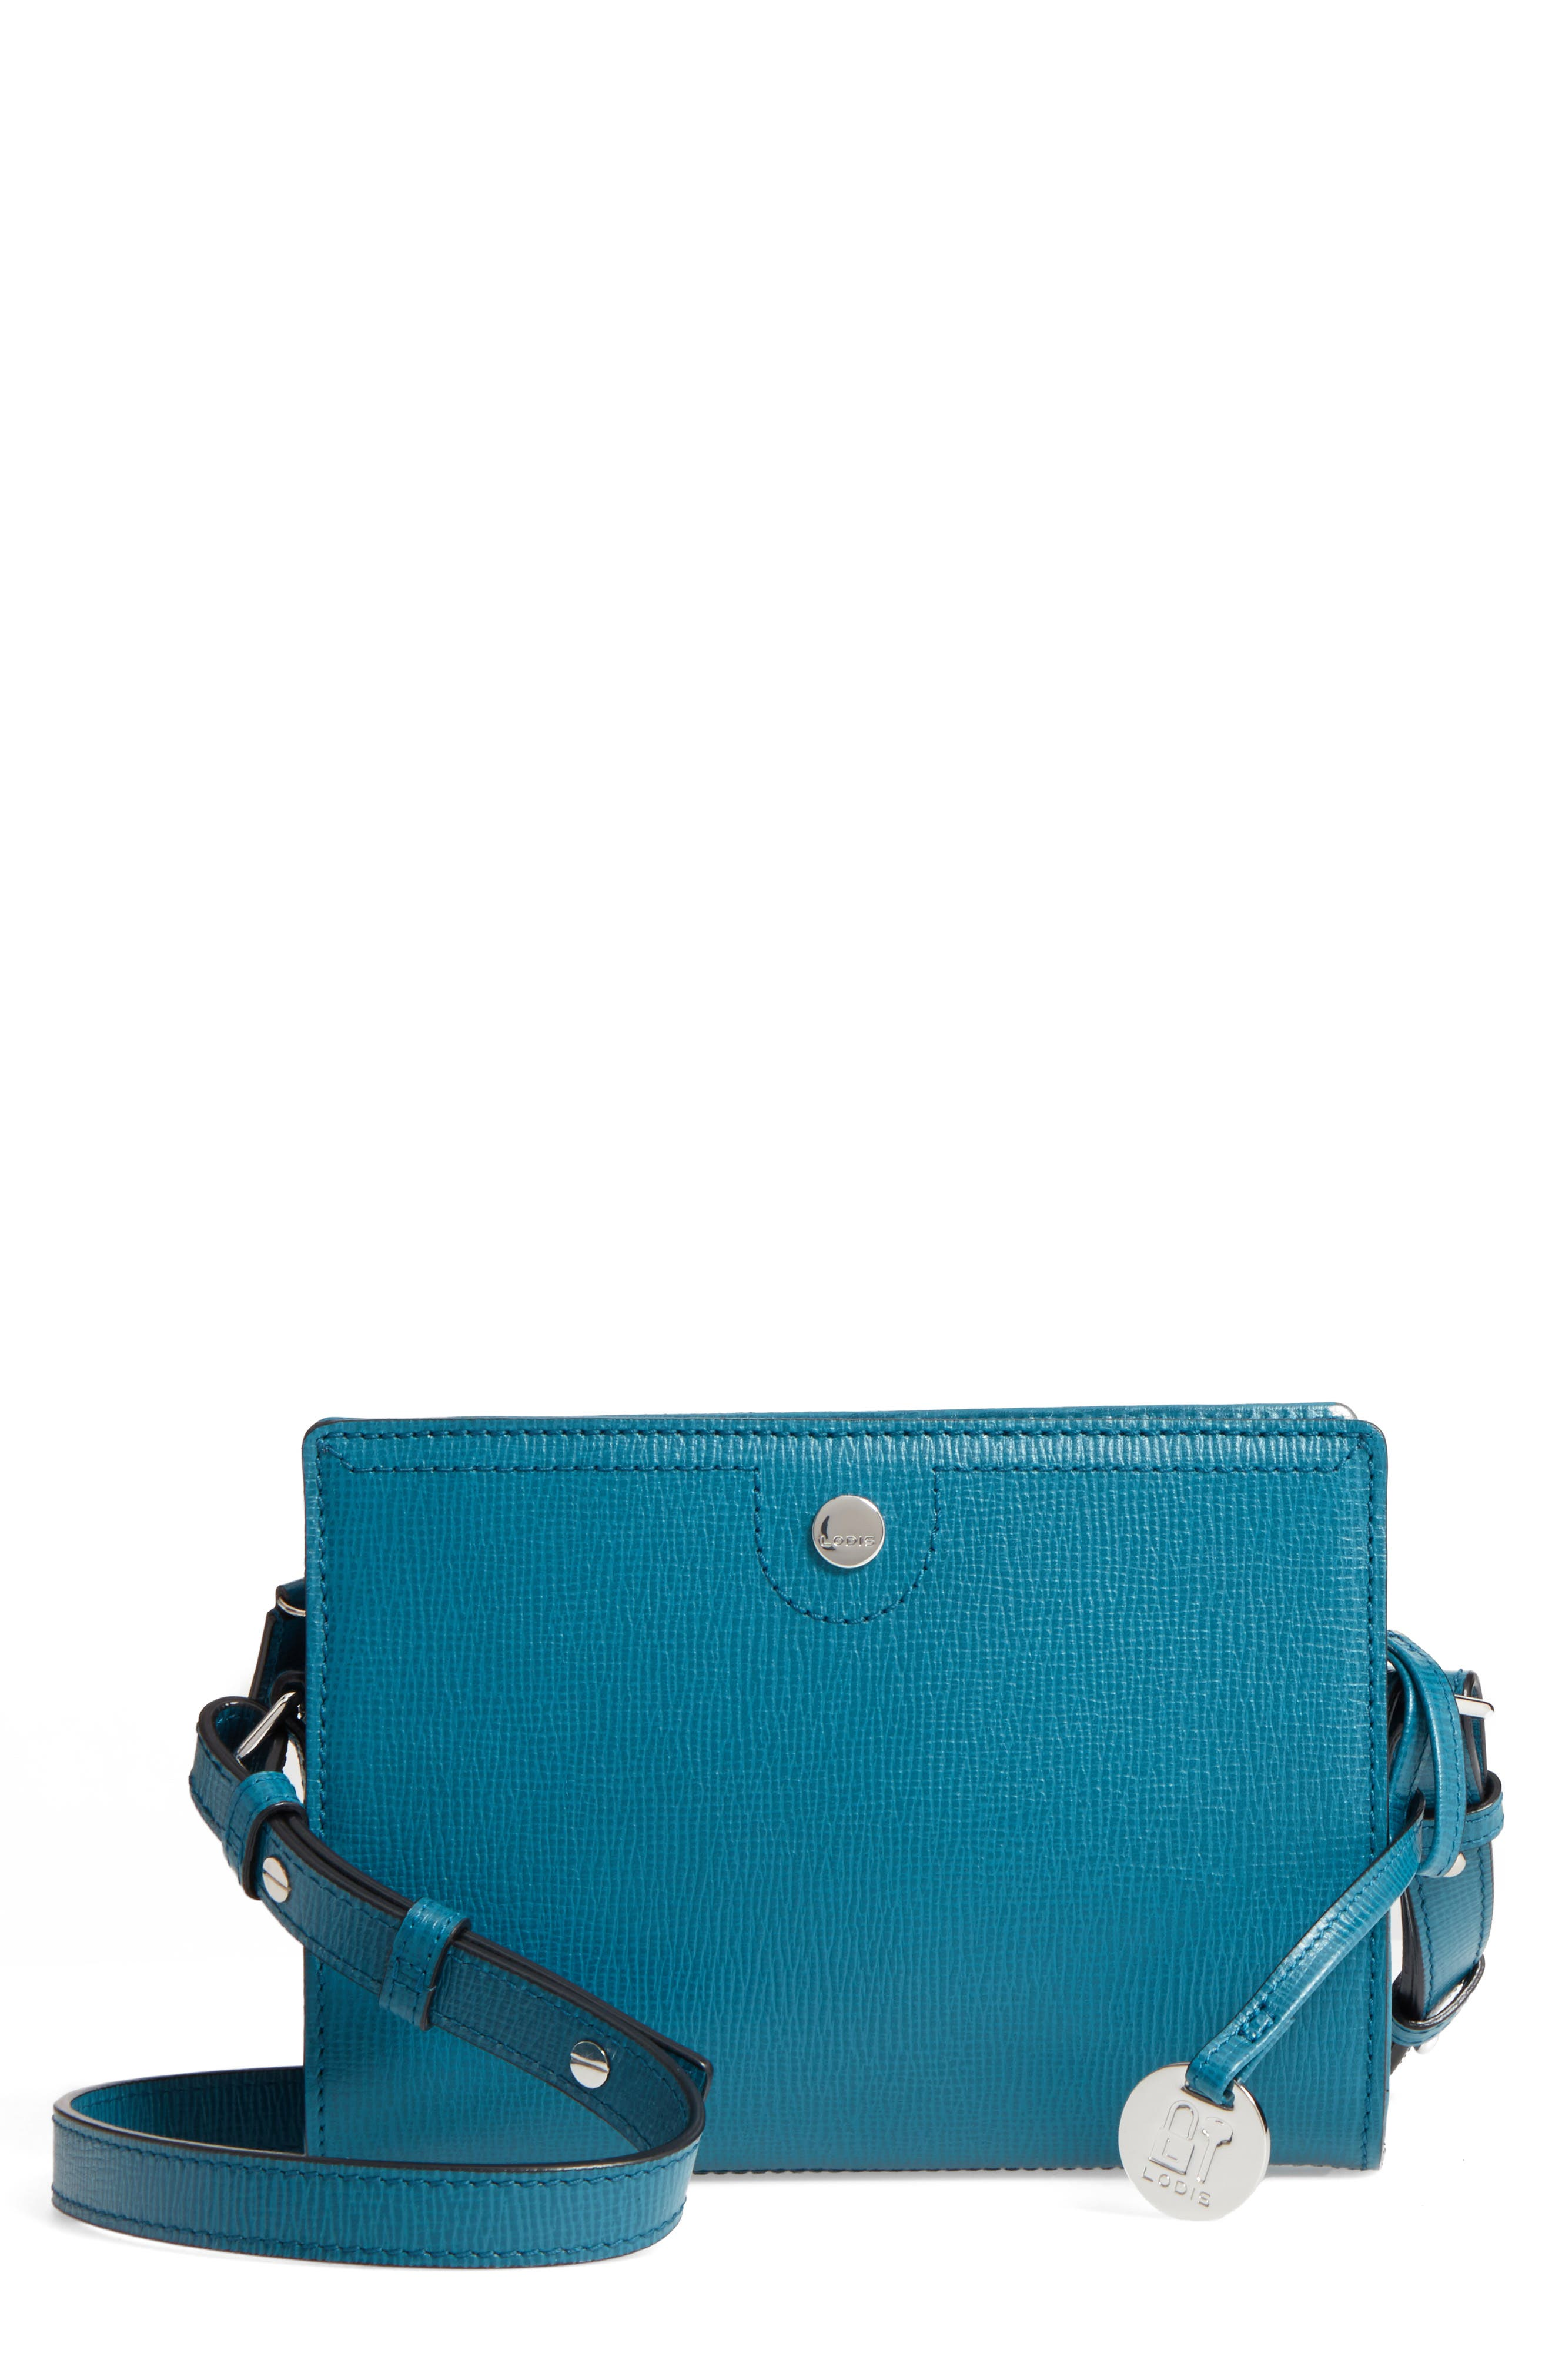 Lodis Business Chic Pheobe RFID-Protected Leather Crossbody Bag